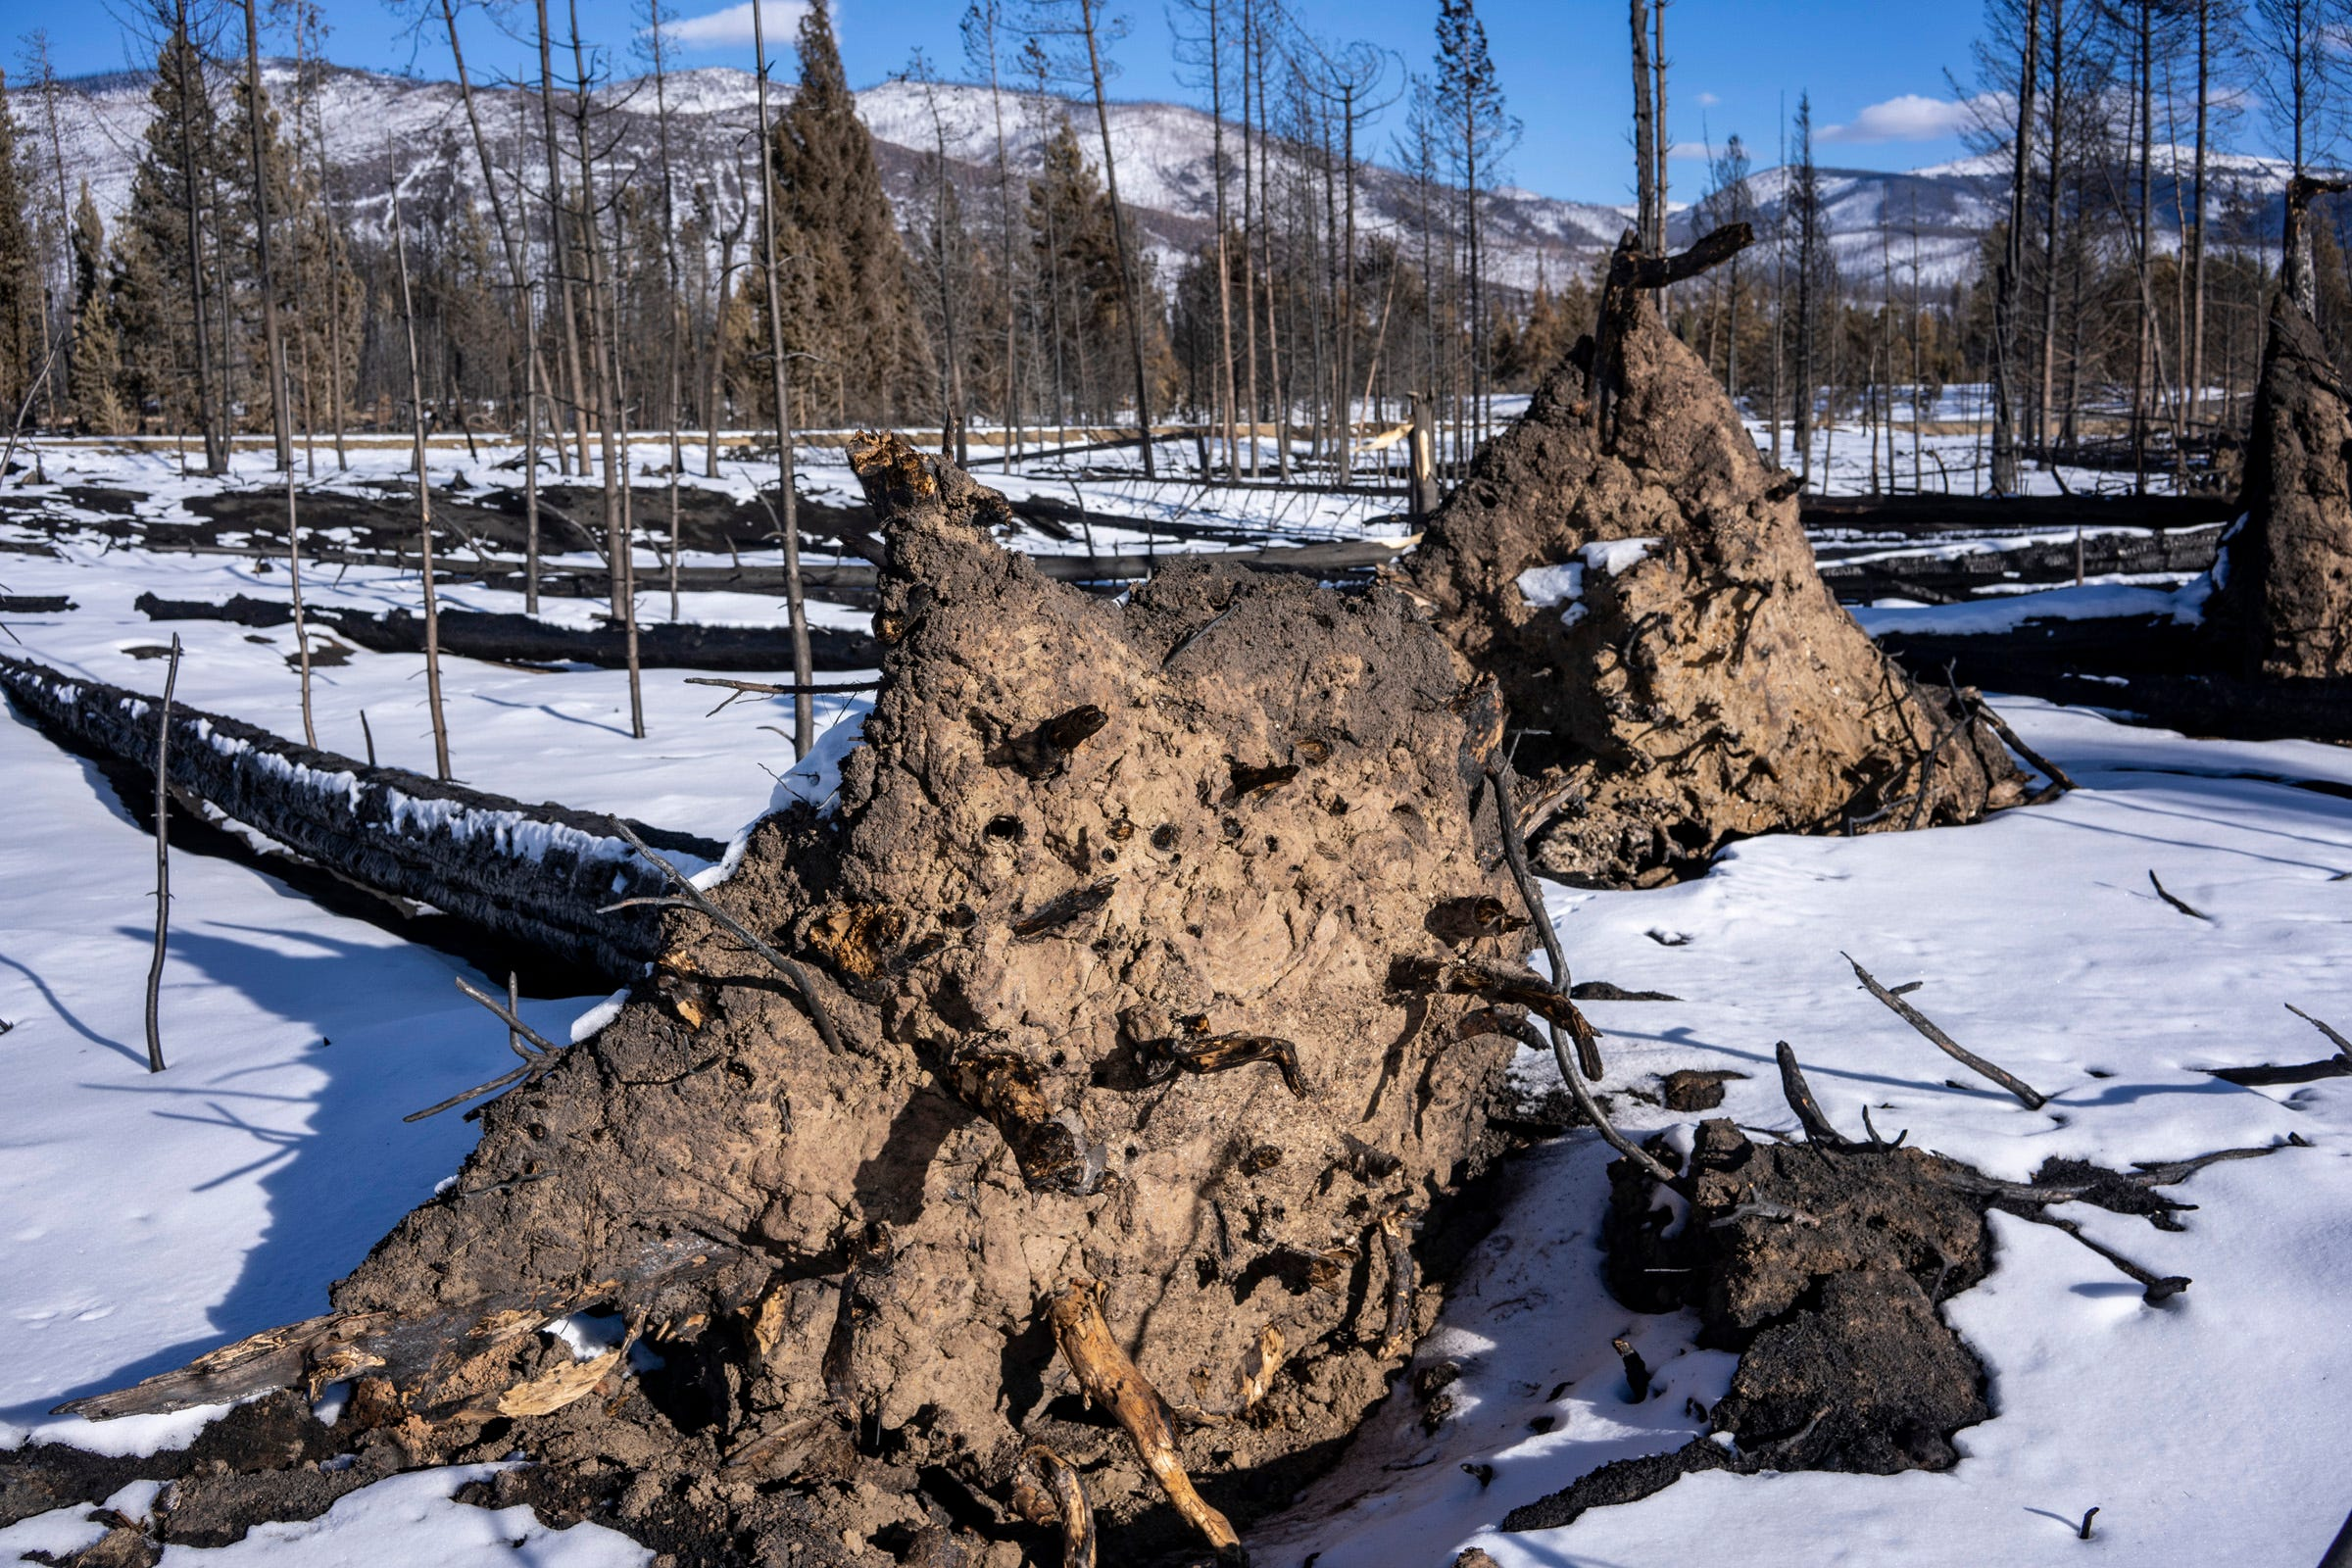 The East Troublesome Fire burned through part of the Colorado River's headwaters in Rocky Mountain National Park. The fire left charred and toppled trees beside a stretch of the river.